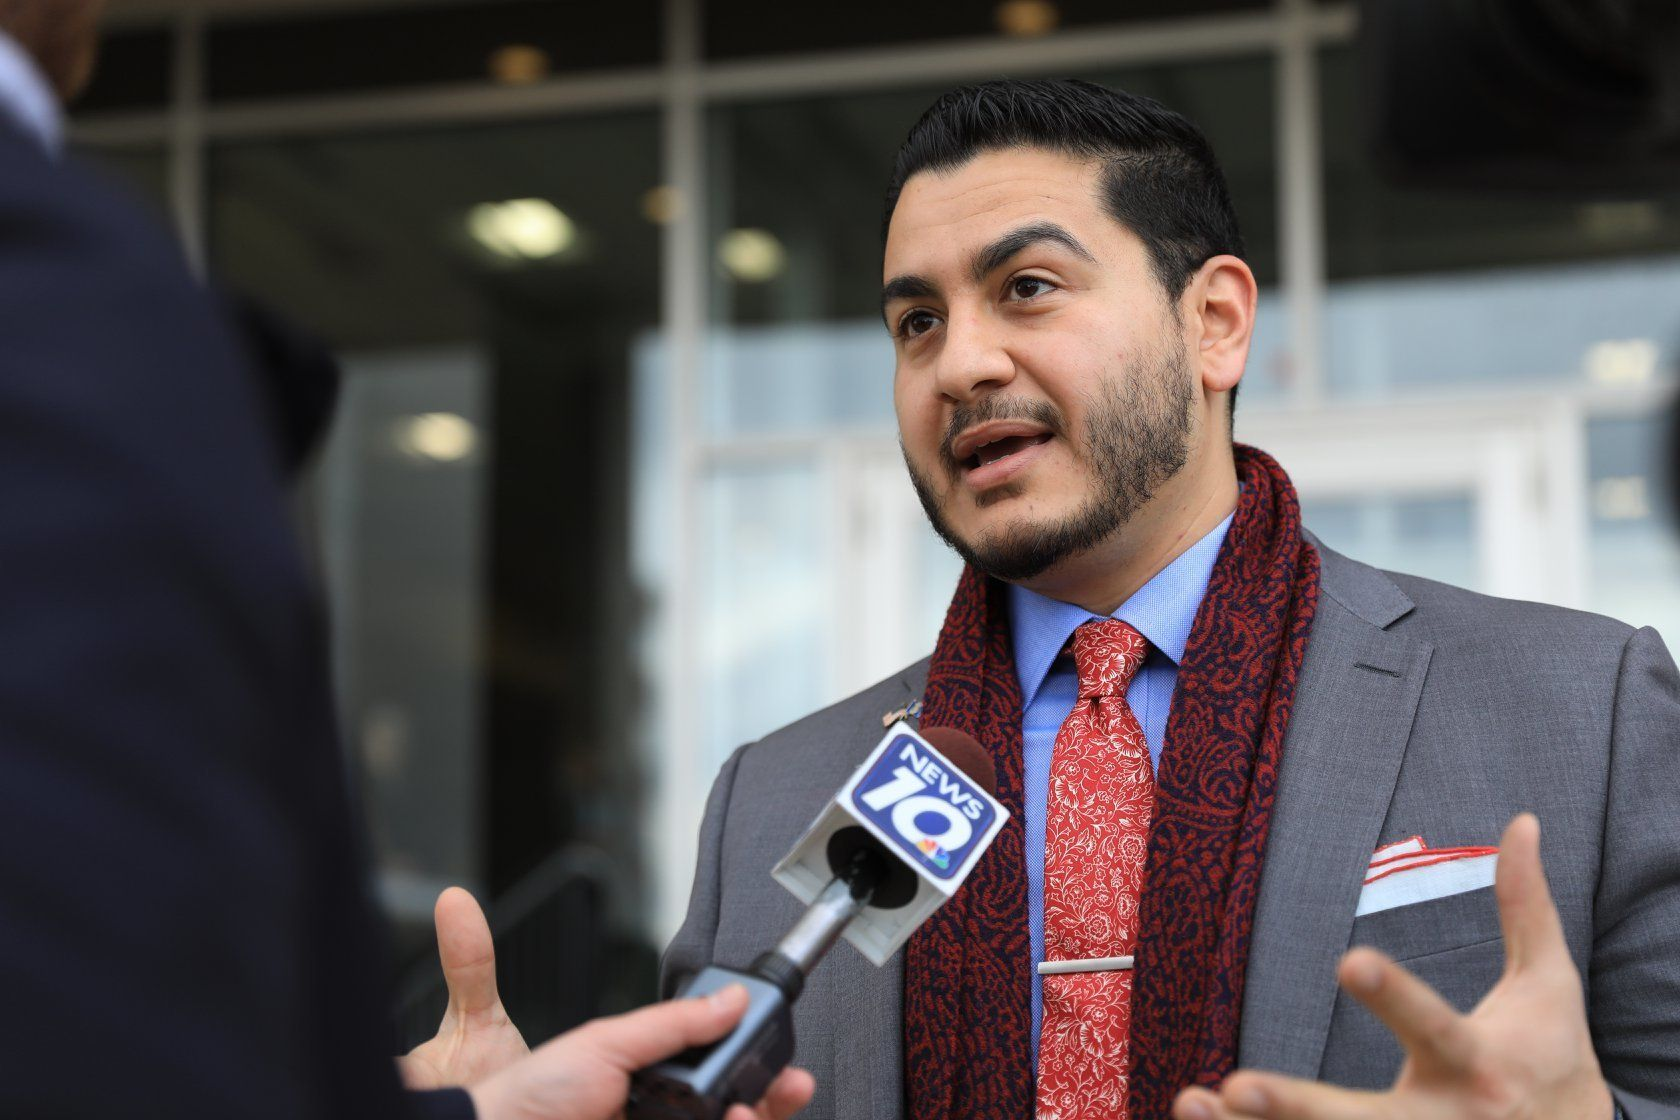 Democrat Abdul El-Sayed, a physician running for Michigan governor, has faced baseless accusations of ties to the Muslim Brot